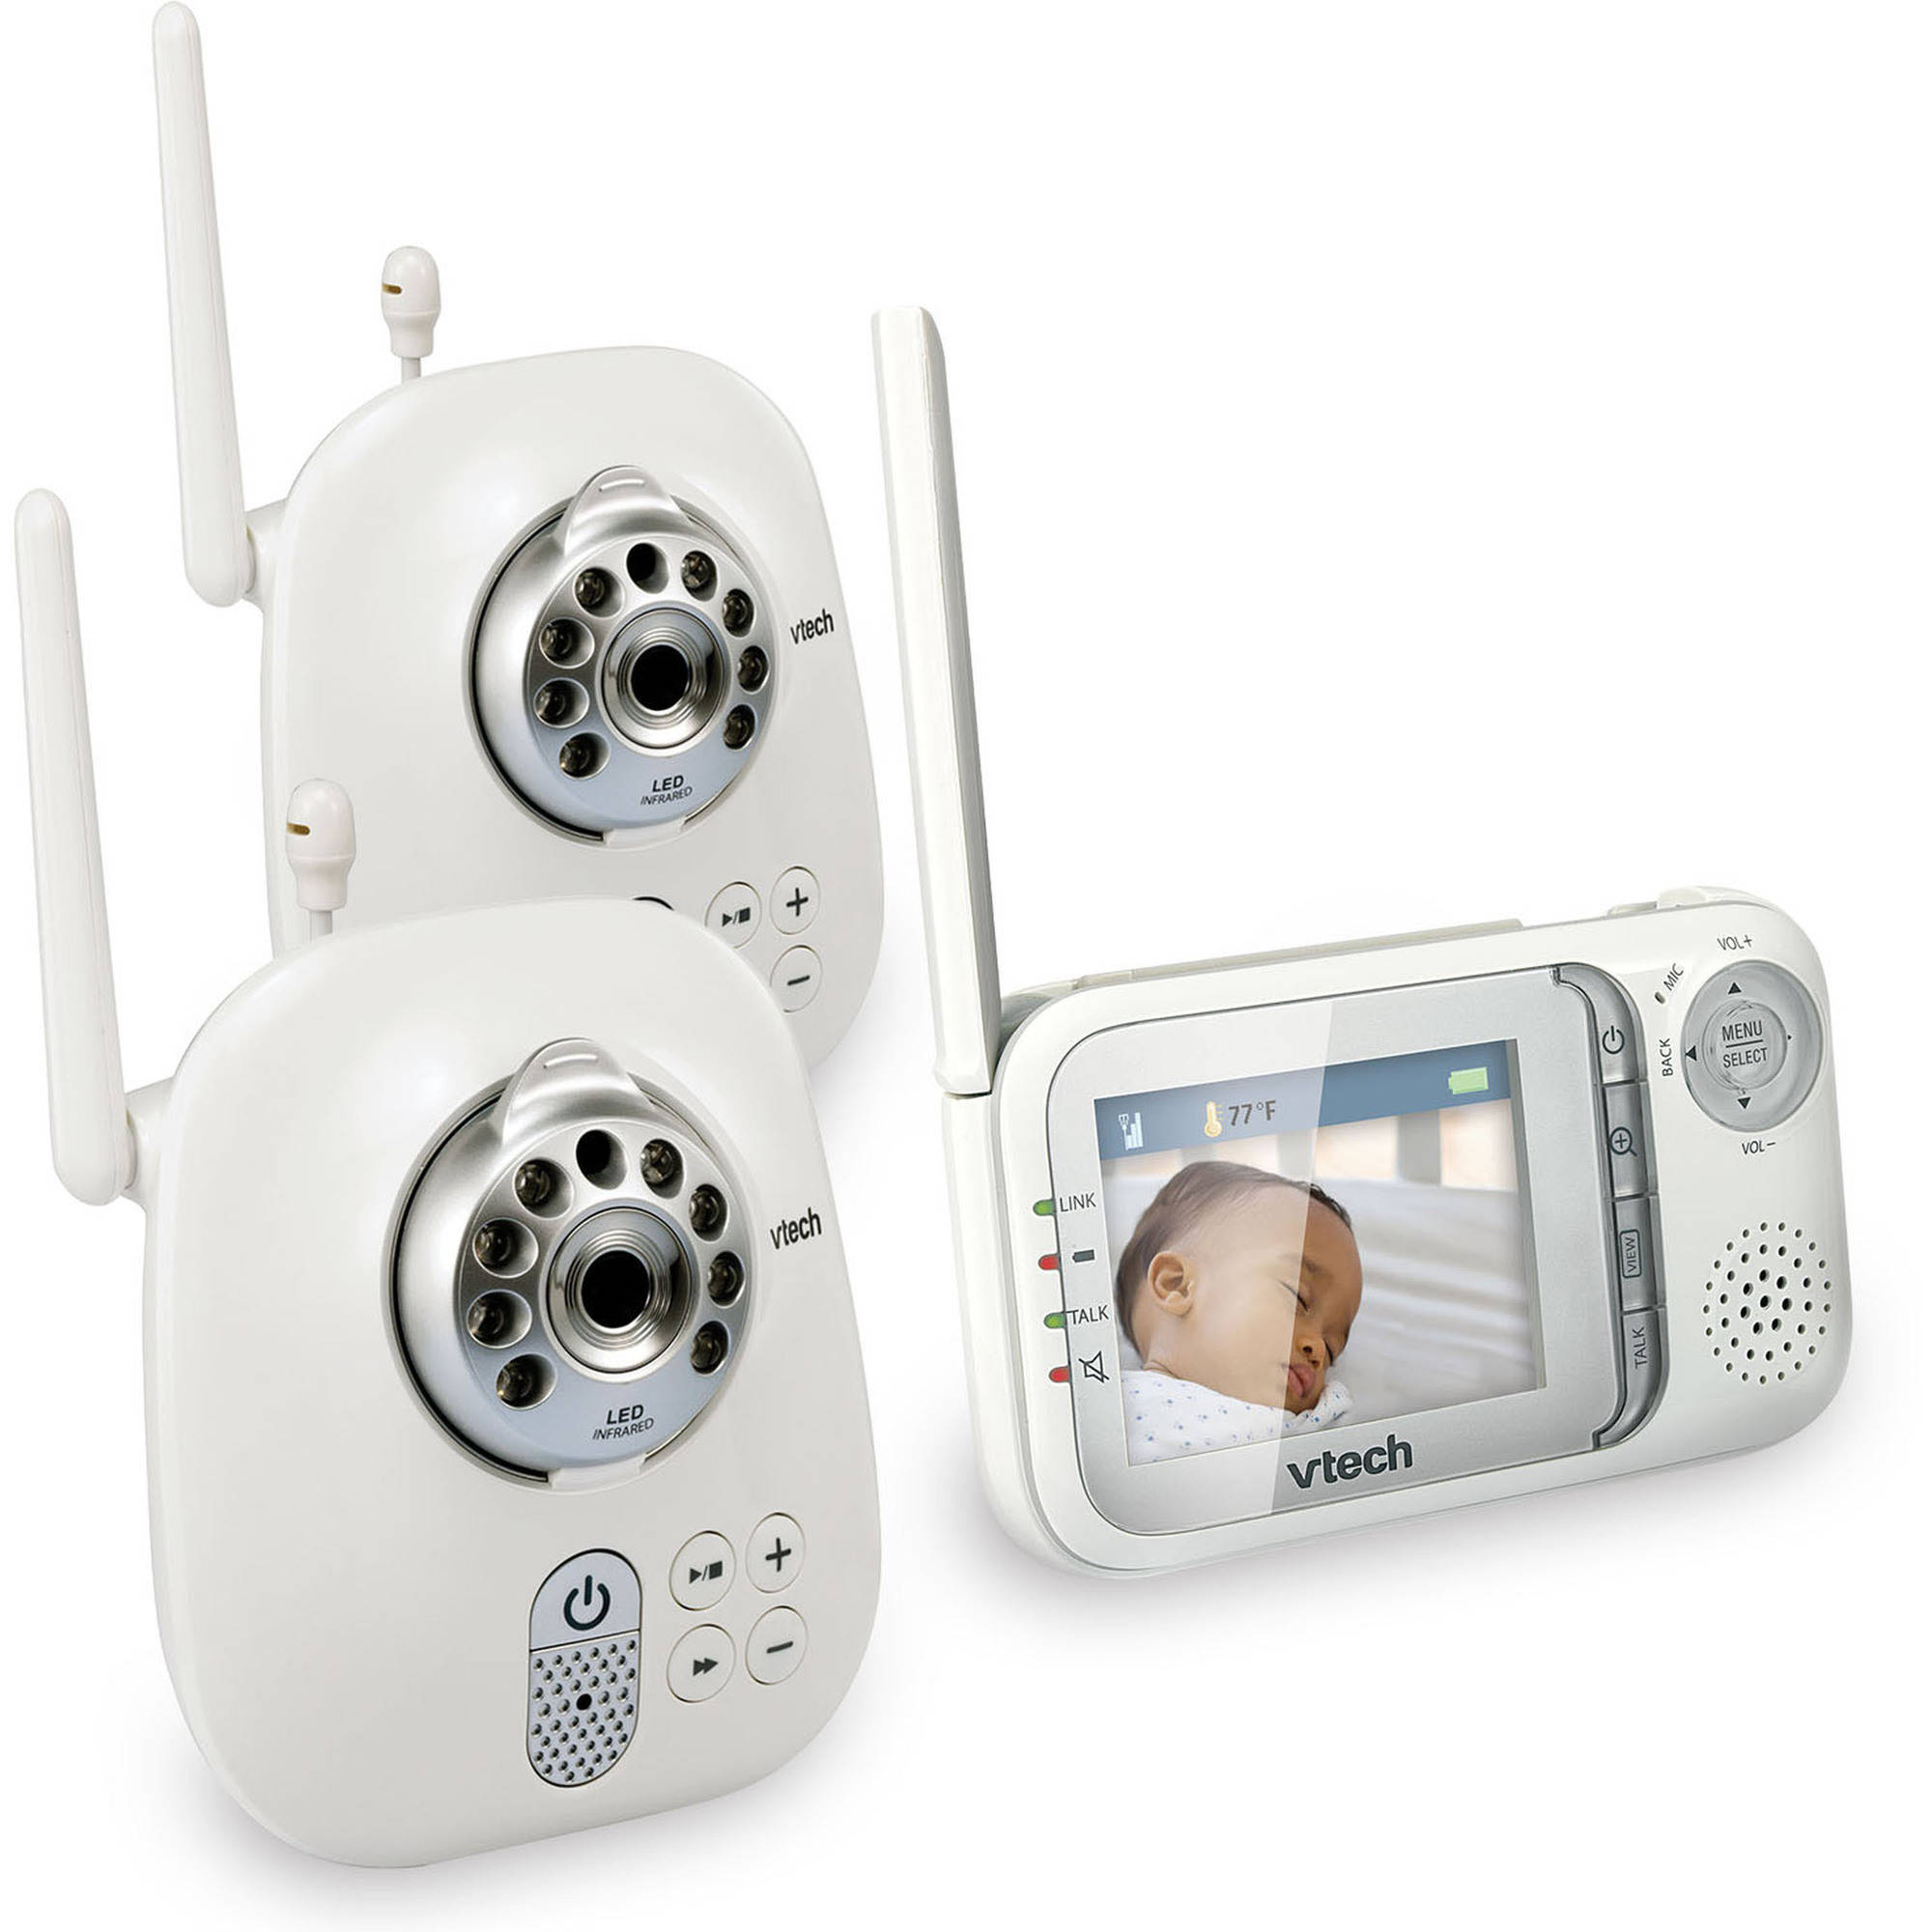 VTech VM321-2 Safe & Sound Video Baby Monitor with Night Vision and 2 Cameras